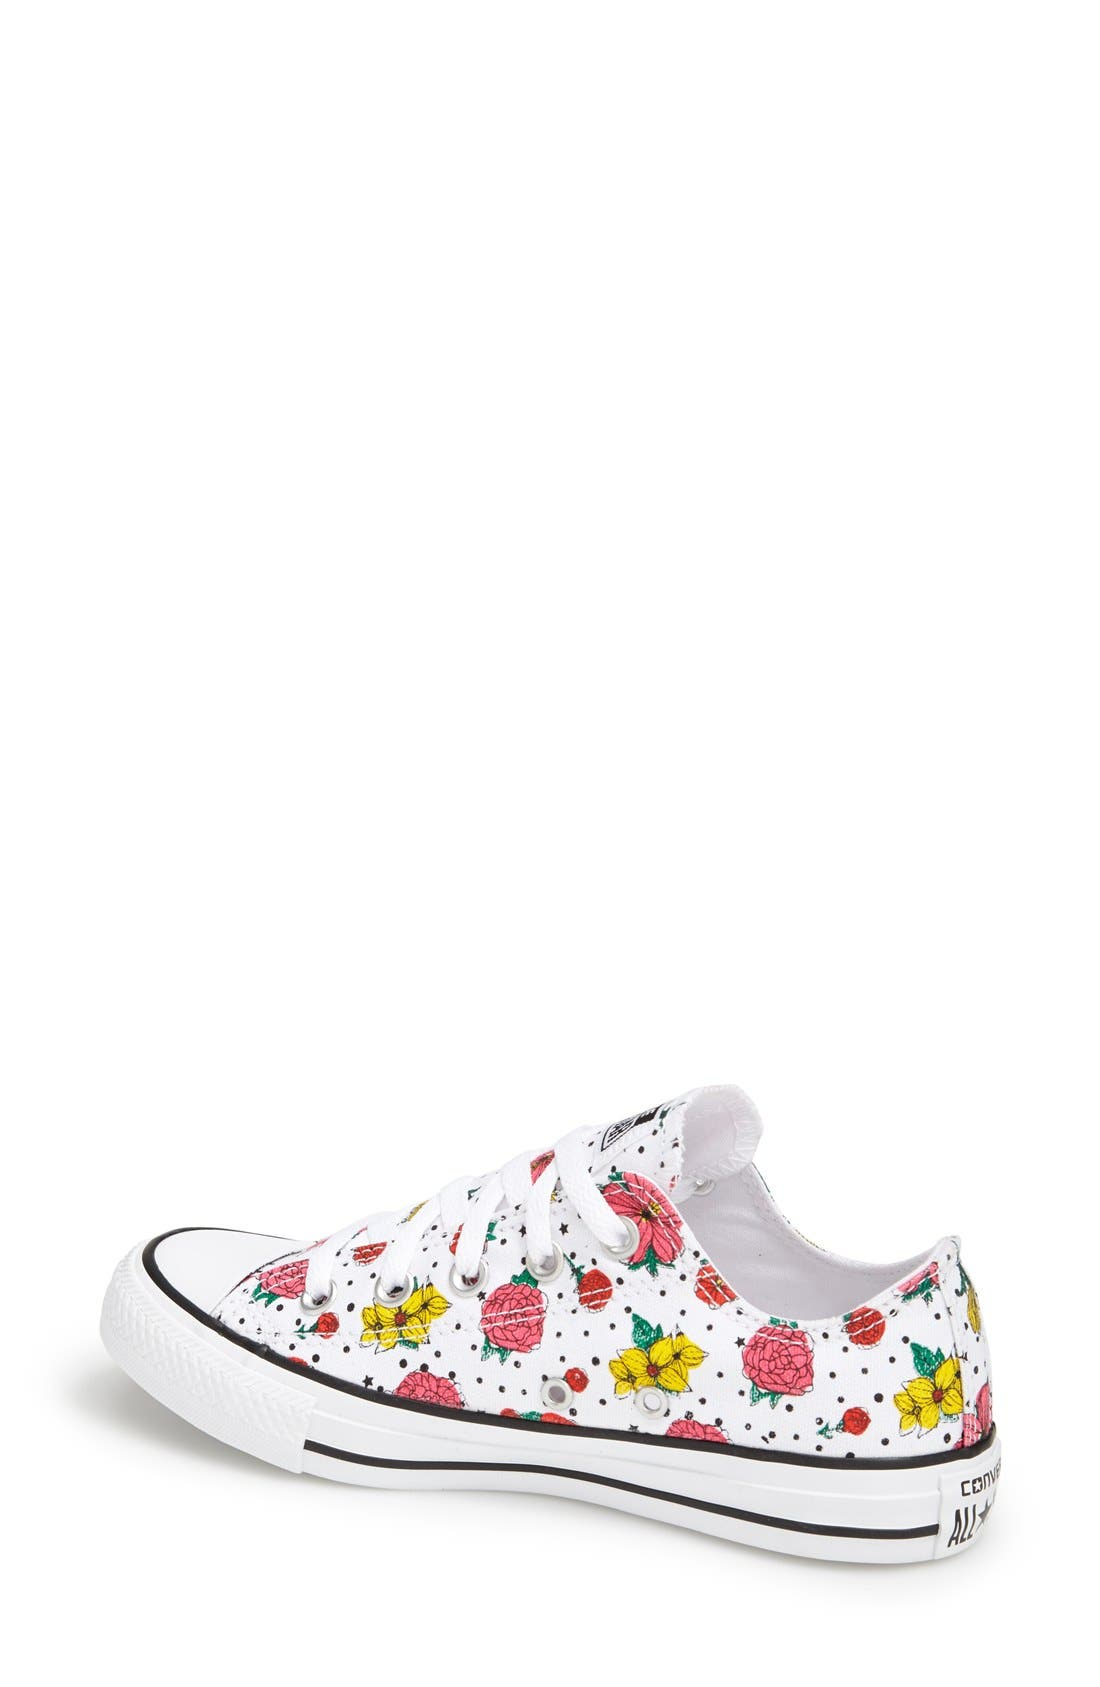 Alternate Image 2  - Converse Chuck Taylor® All Star® Floral Polka Dot Low Top Sneaker (Women)